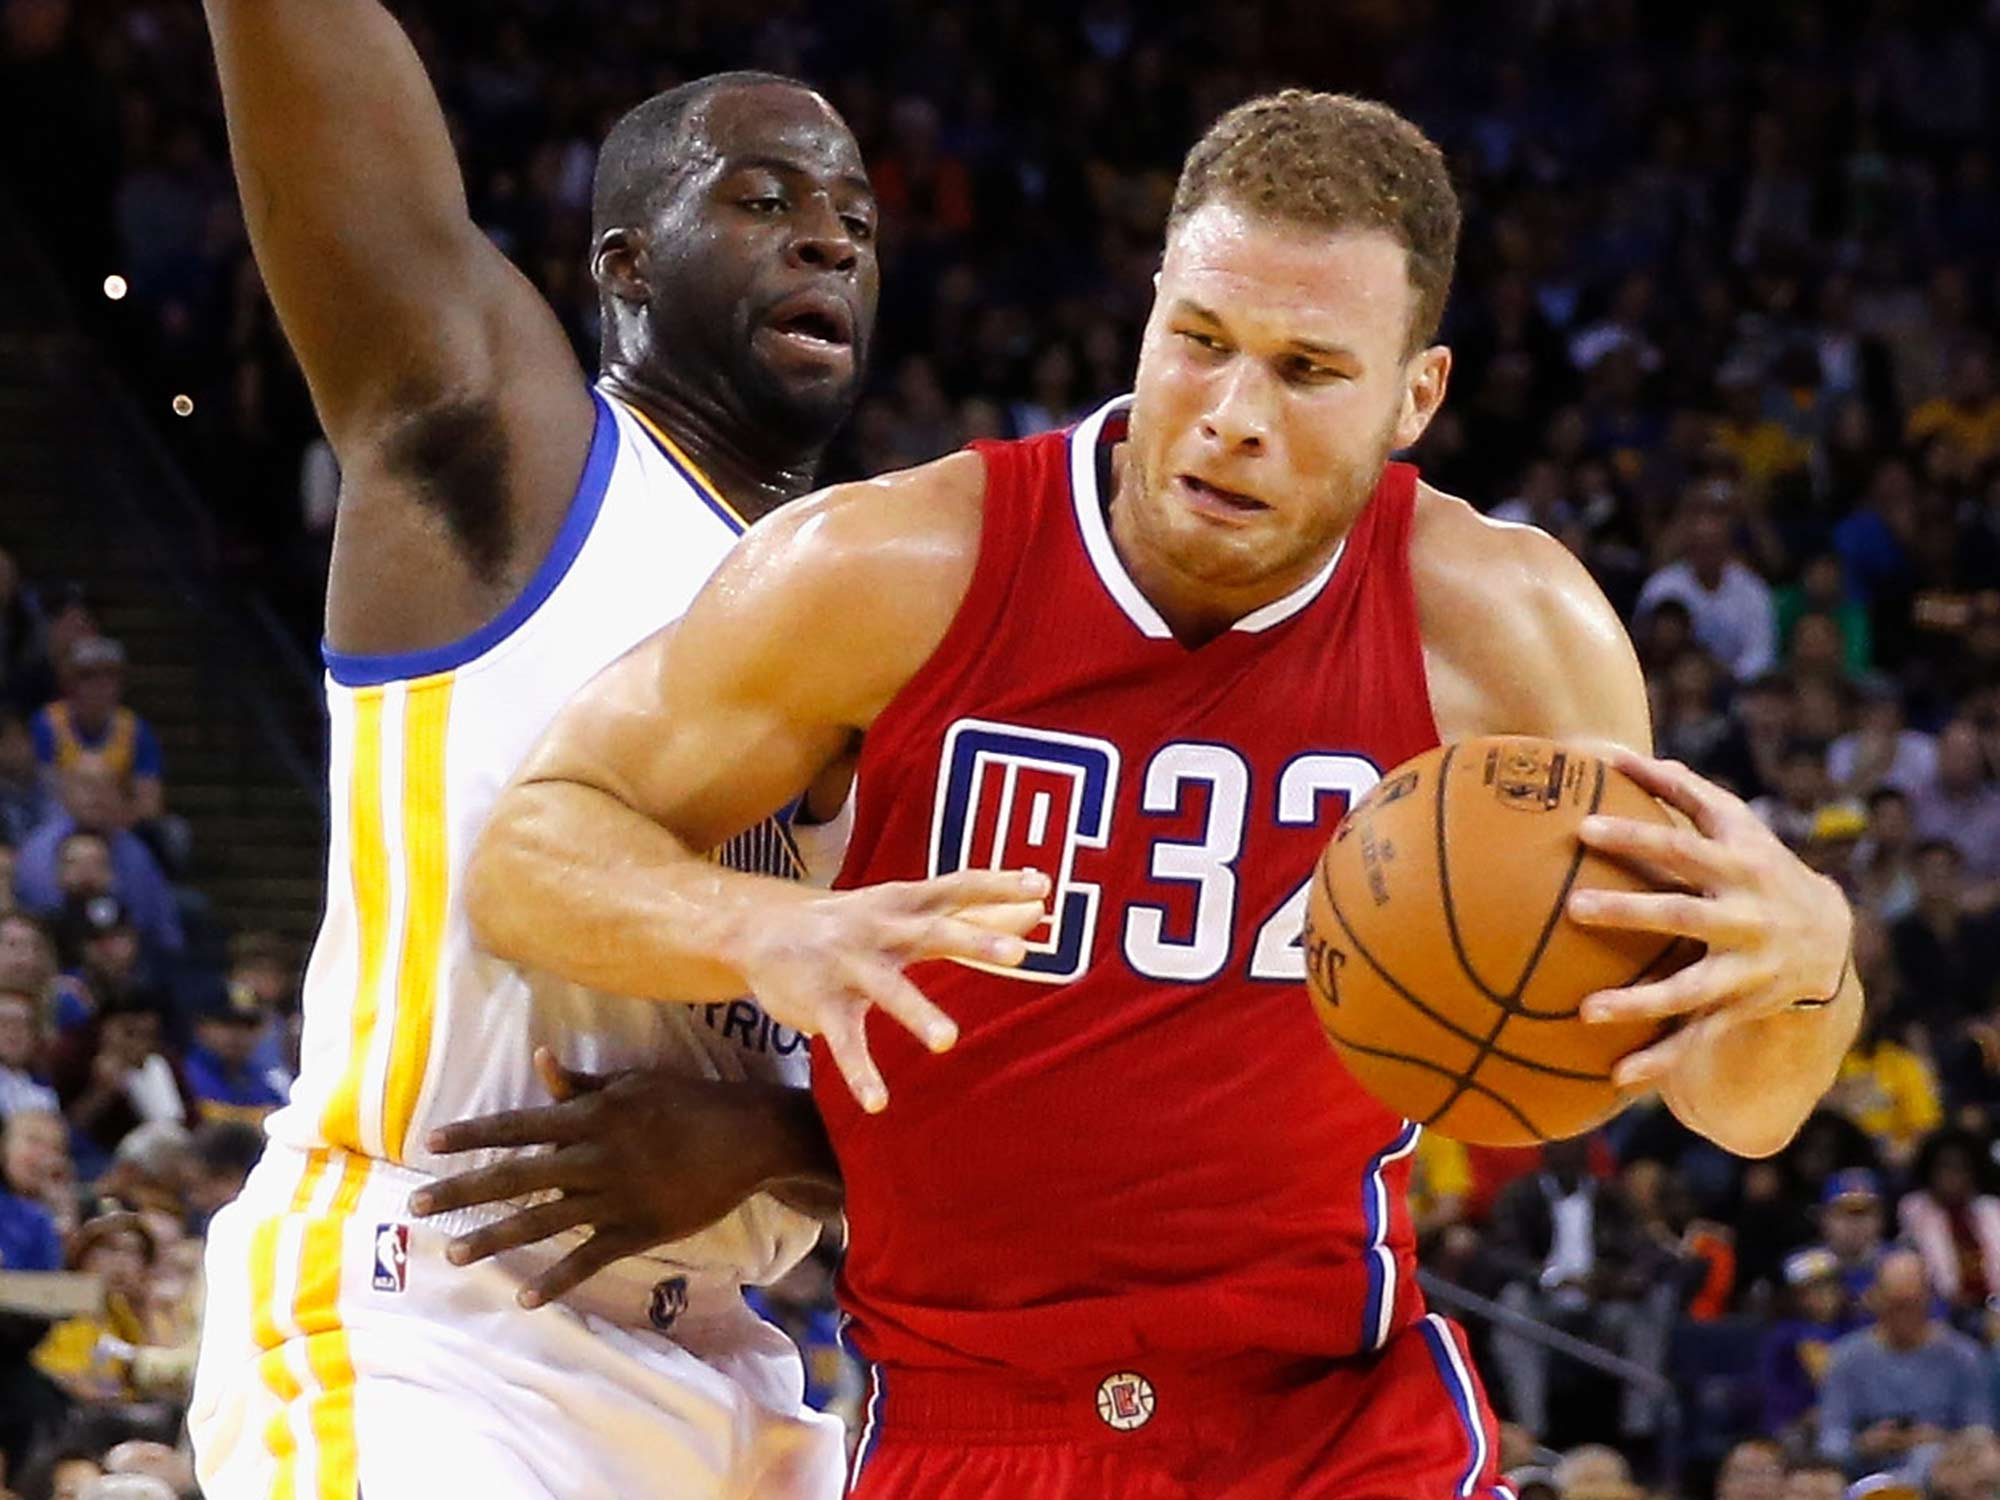 Draymond Green and Blake Griffin